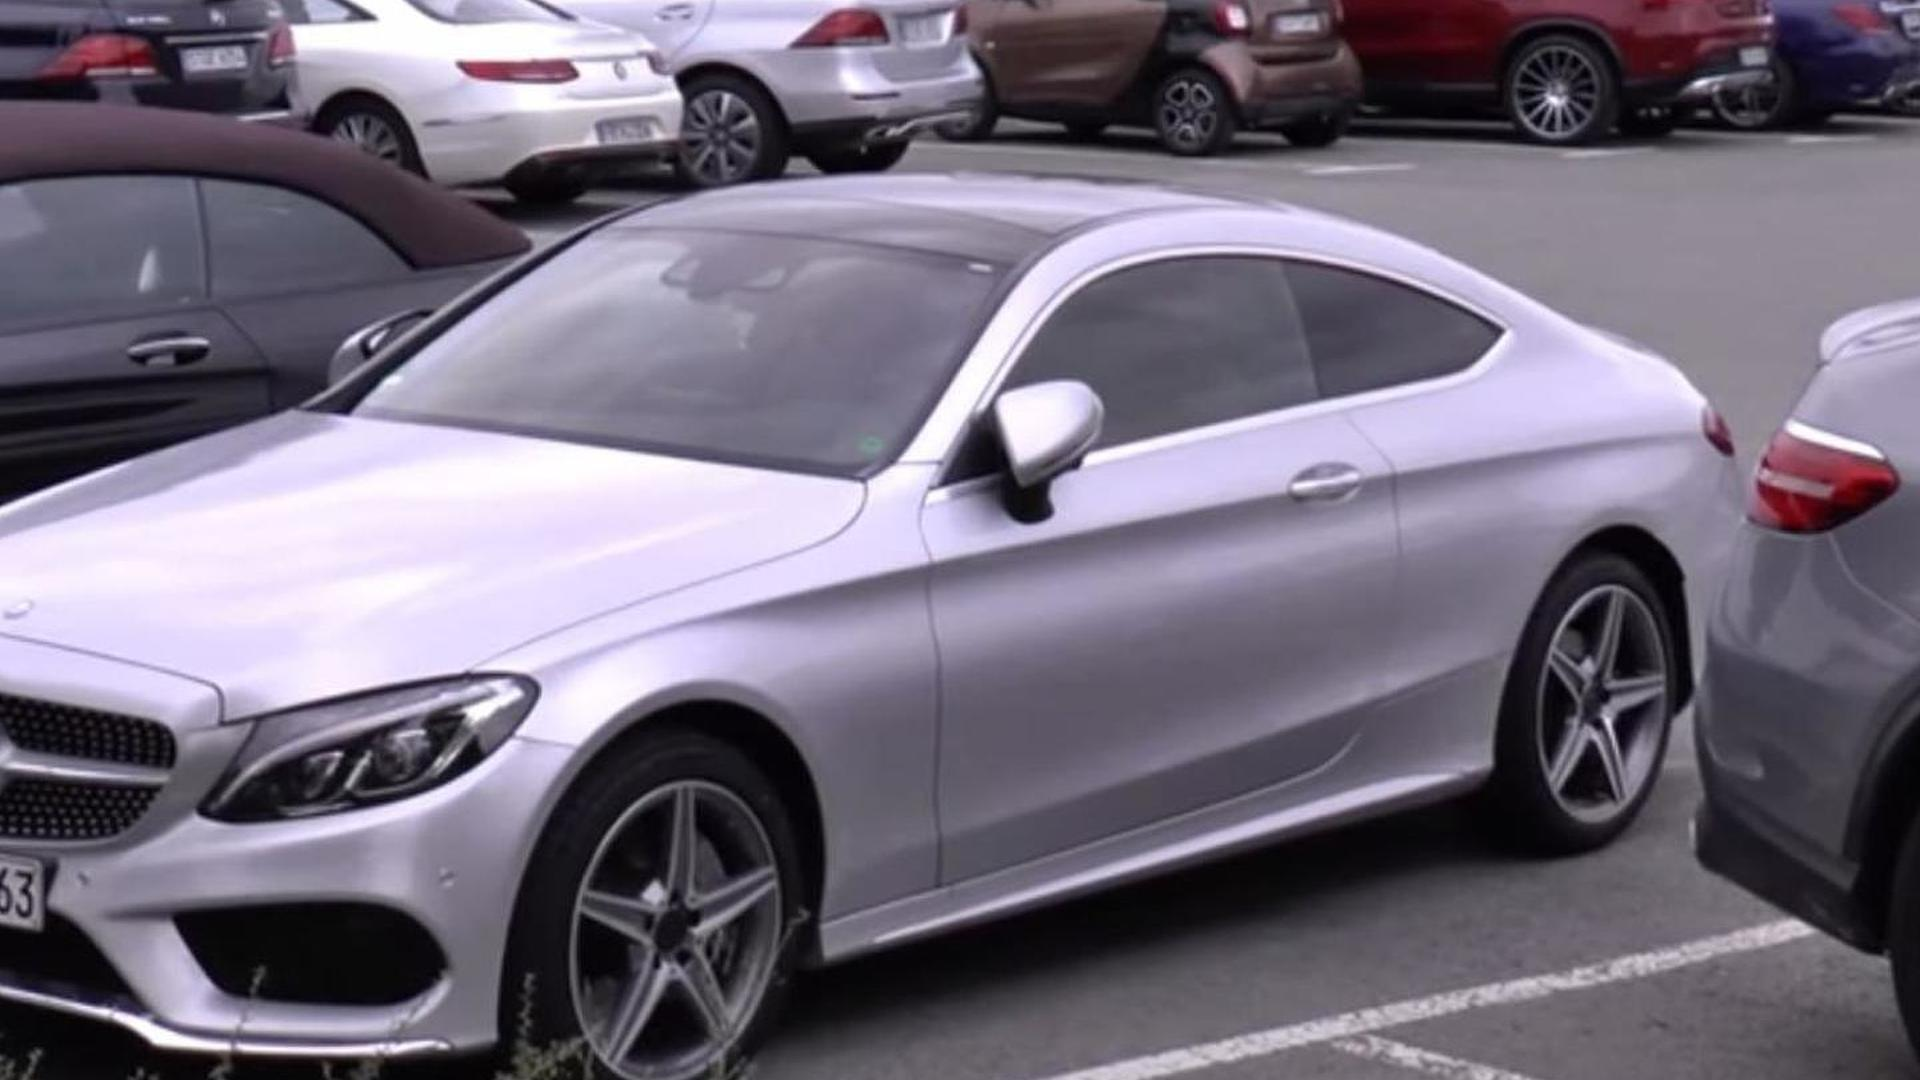 mercedes benz c class coupe and s class cabriolet spotted in the metal for the first time videos. Black Bedroom Furniture Sets. Home Design Ideas